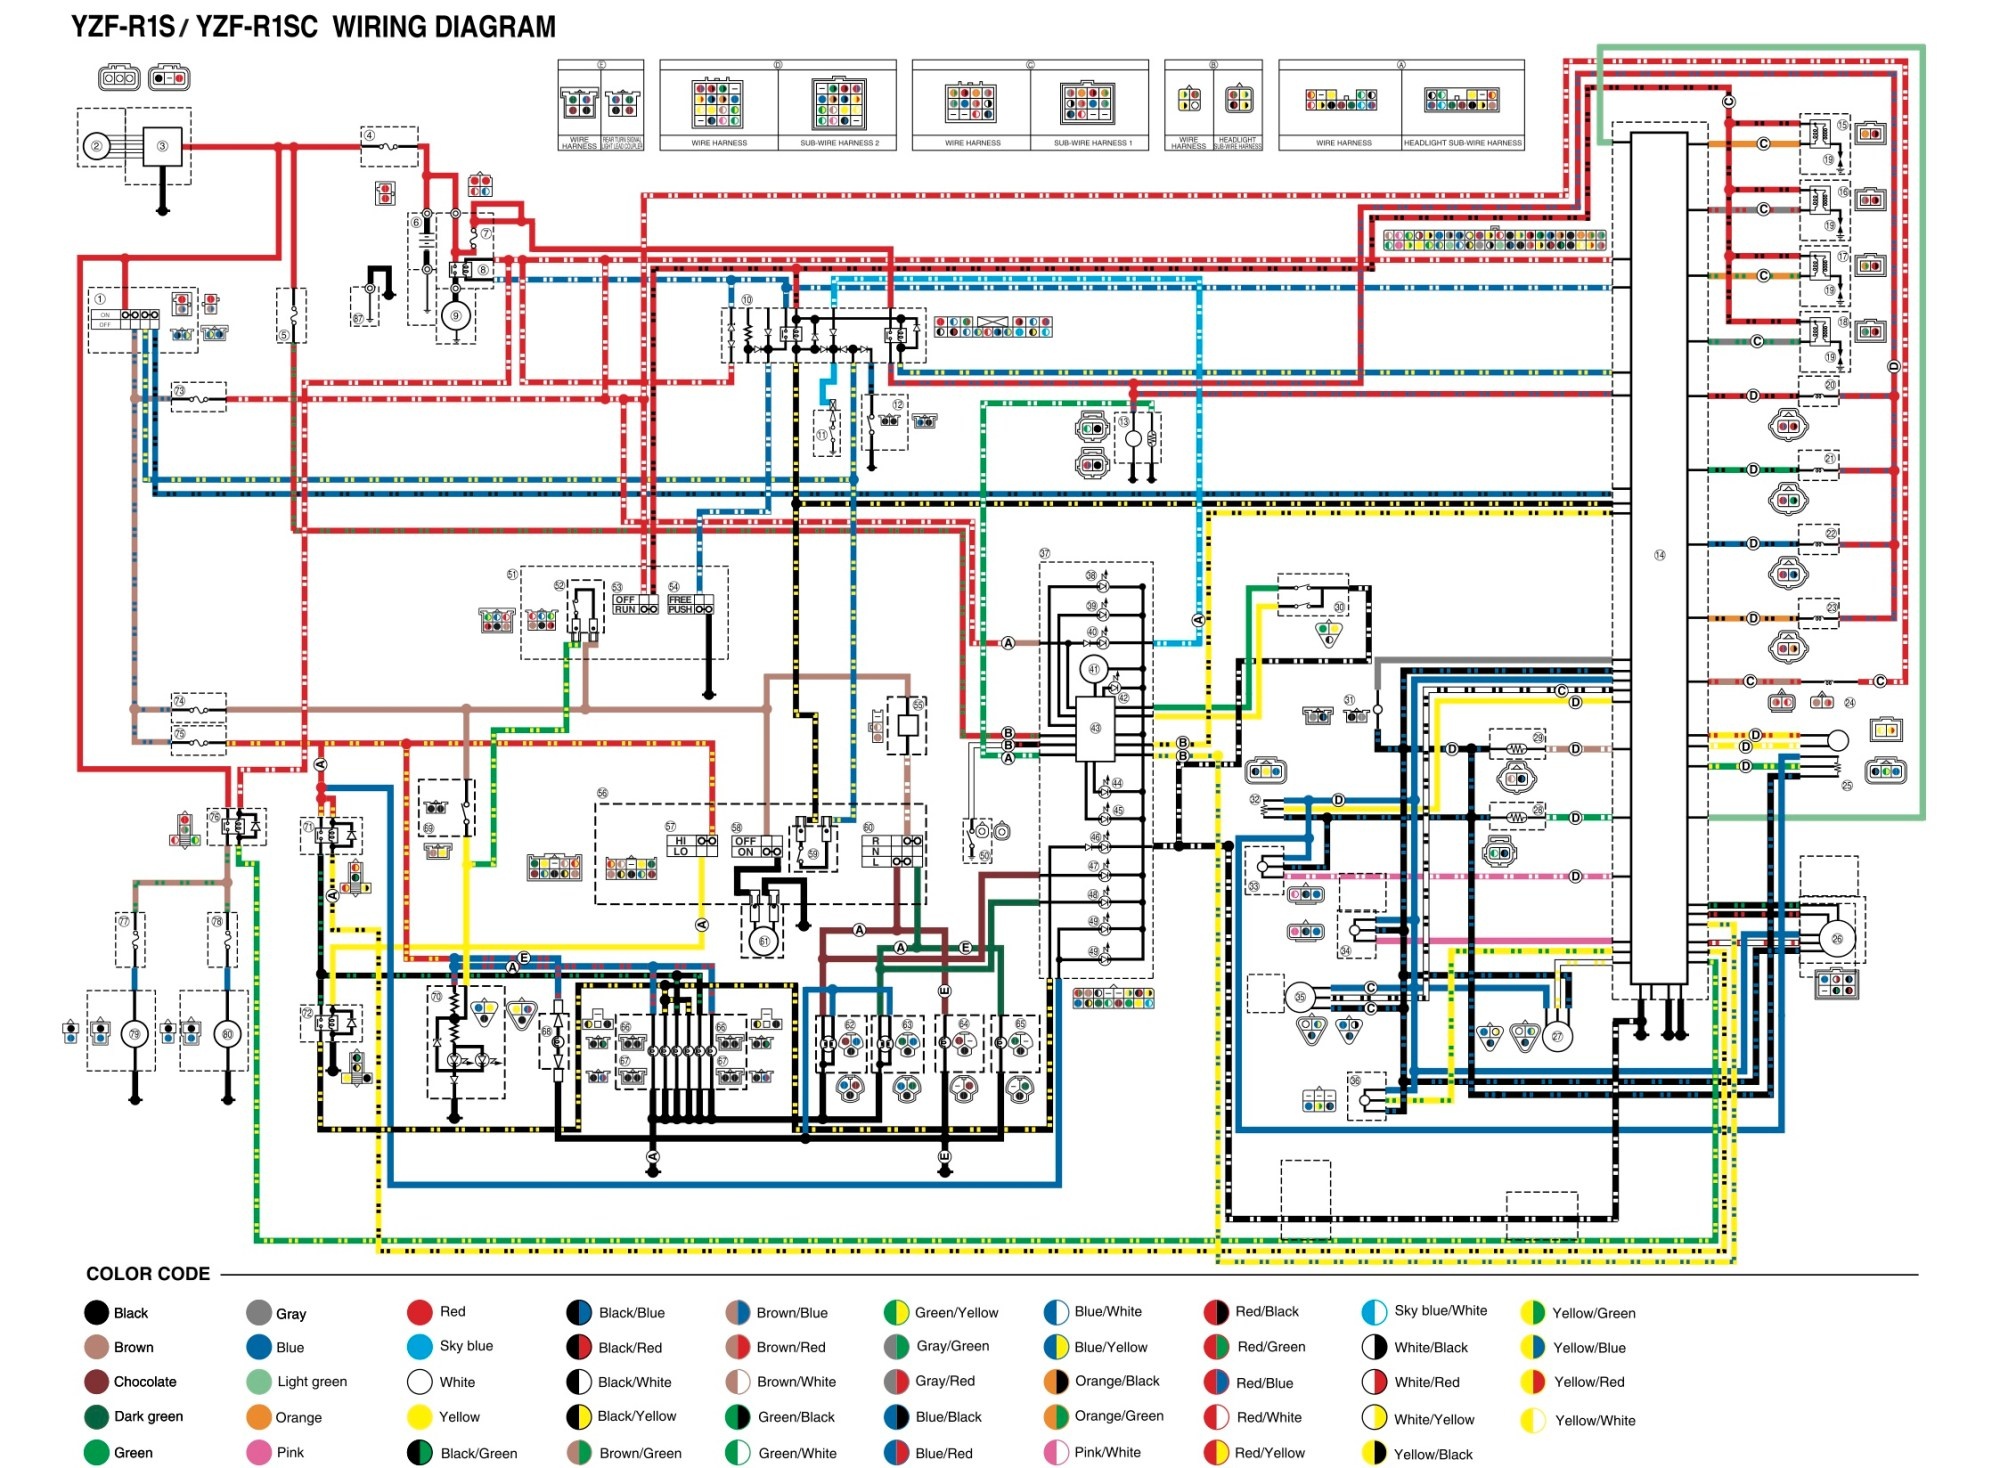 hight resolution of yamaha wiring harness diagram wiring diagrams yamaha blaster wiring diagram yamaha r6 key switch wiring